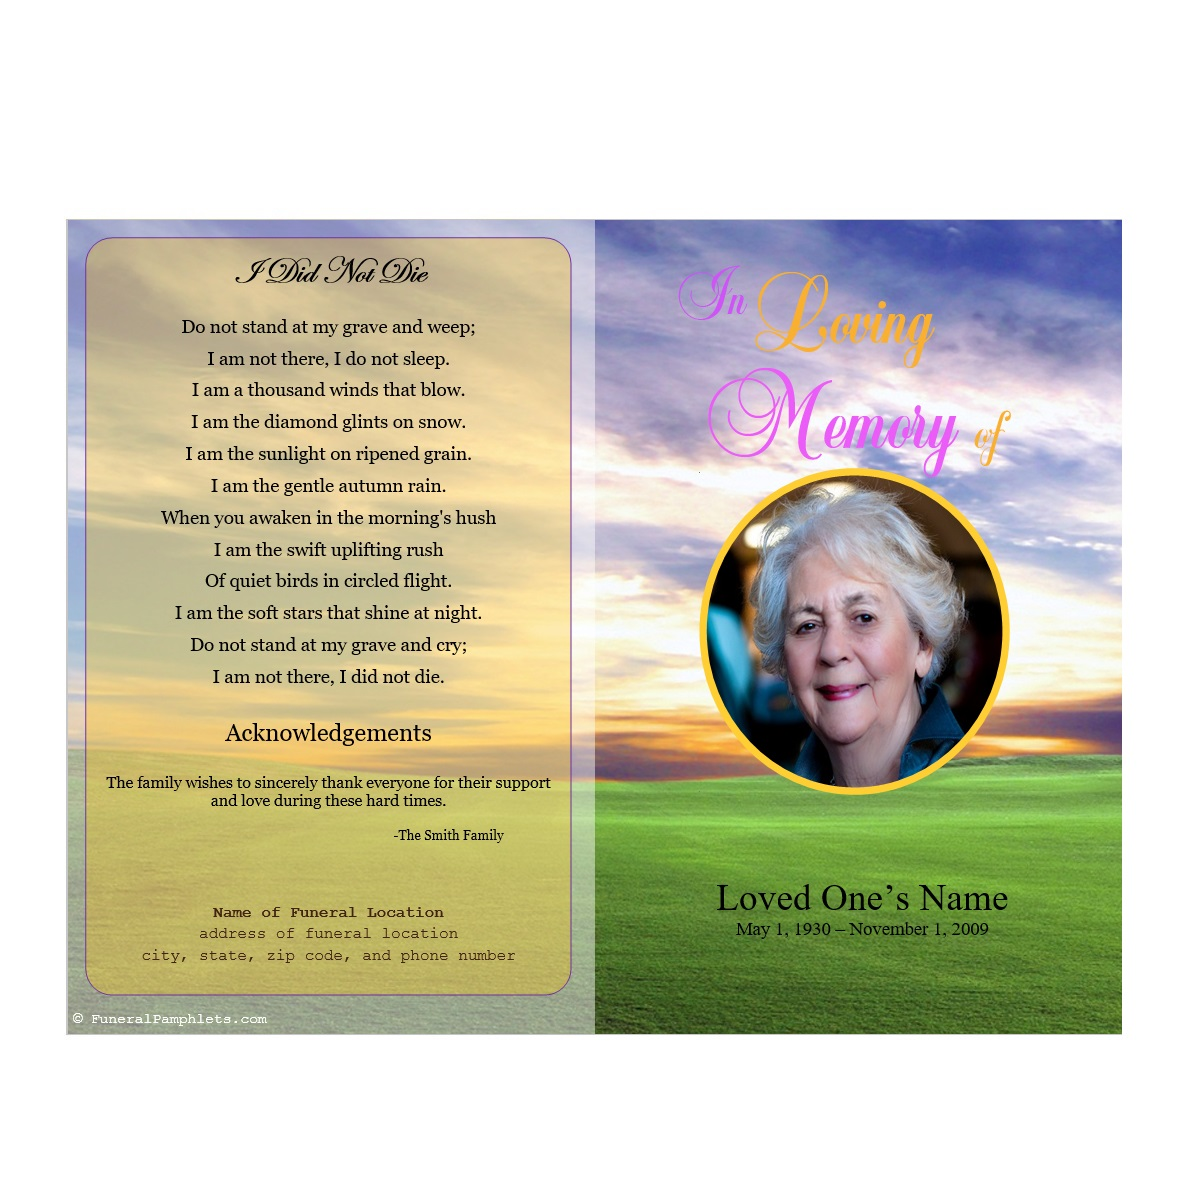 Meadow memorial program funeral pamphlets for Memorial pamphlet